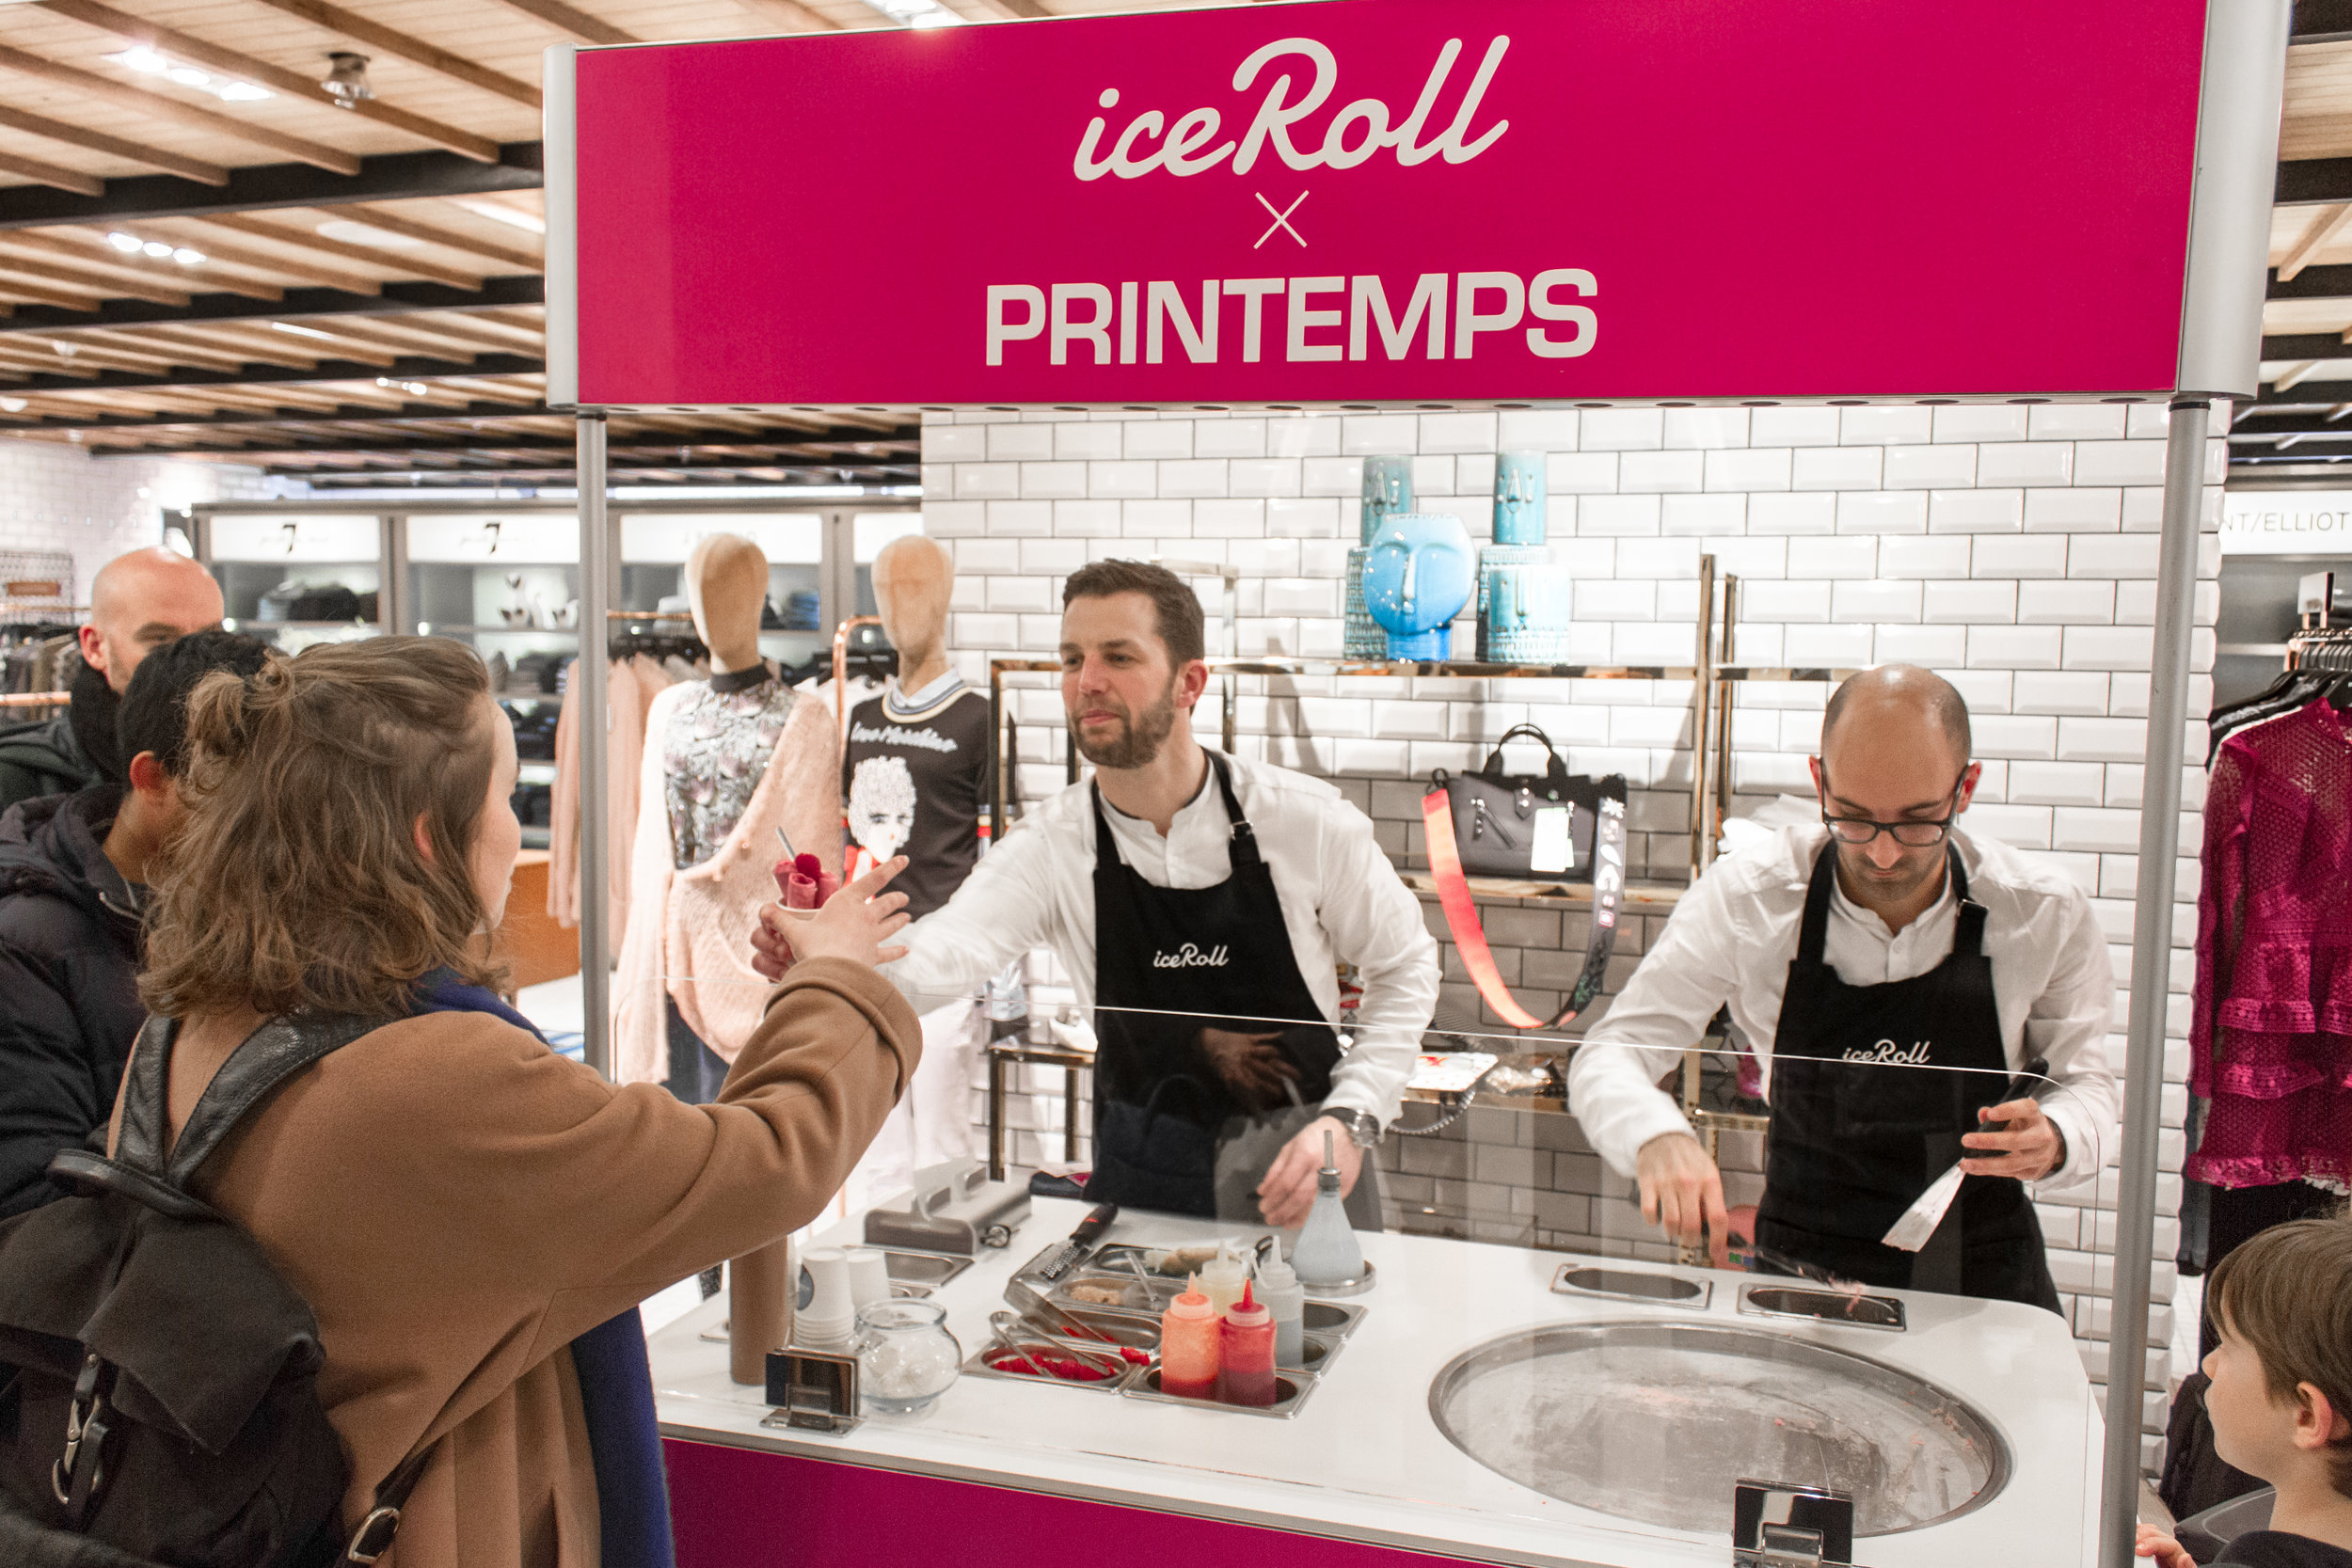 ice roll stand machine printemps animation glace